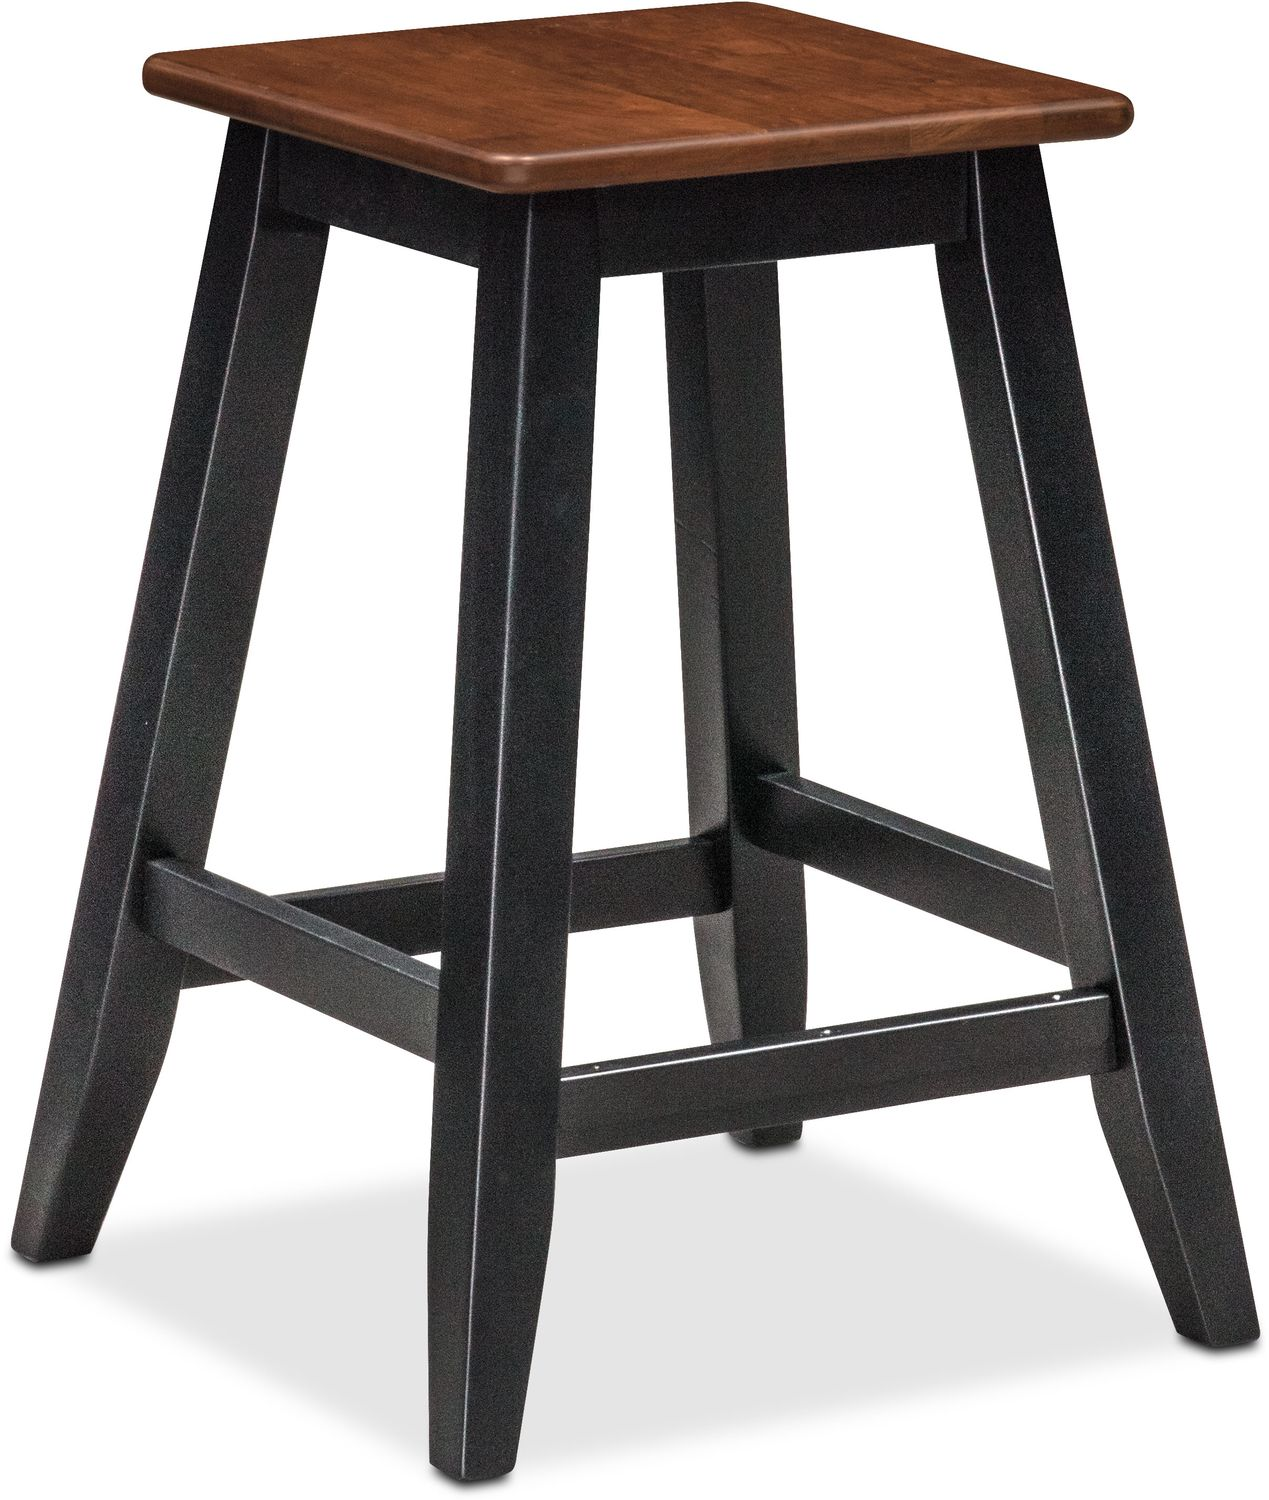 Nantucket Counter Height Stool   Black And Cherry